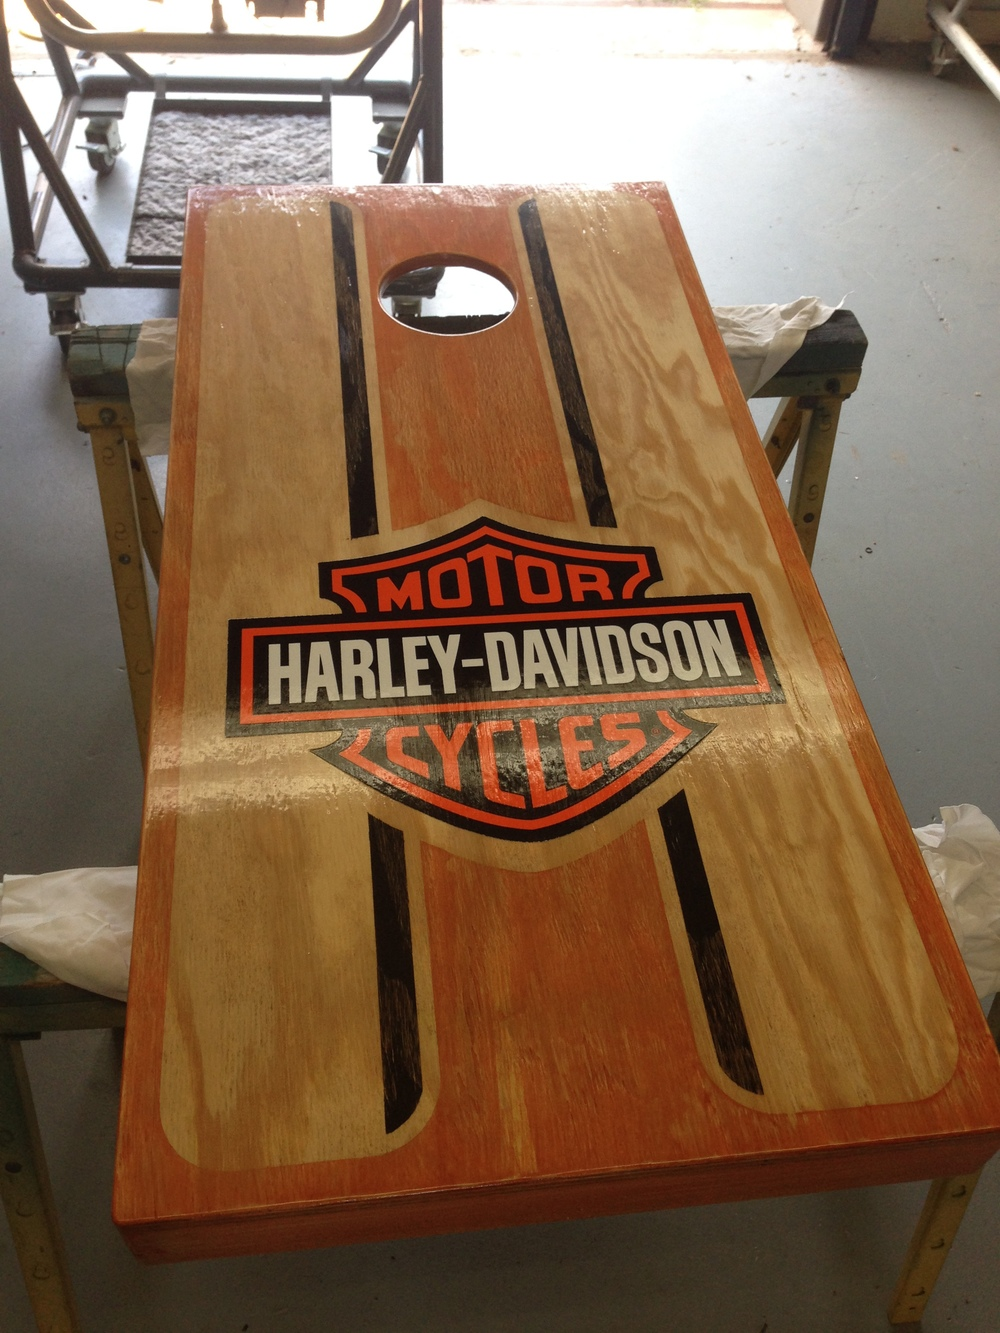 One of the custom corn hole boards in the silent auction